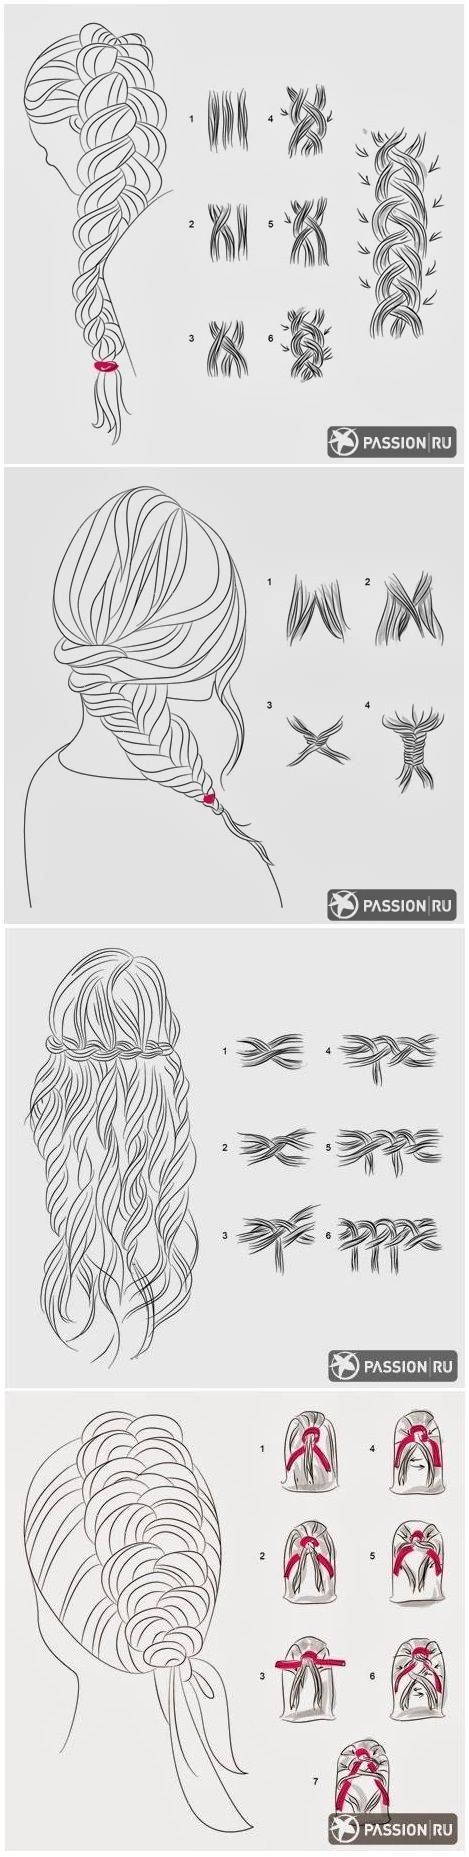 26 Best Hair Tutorials You'll Ever Read